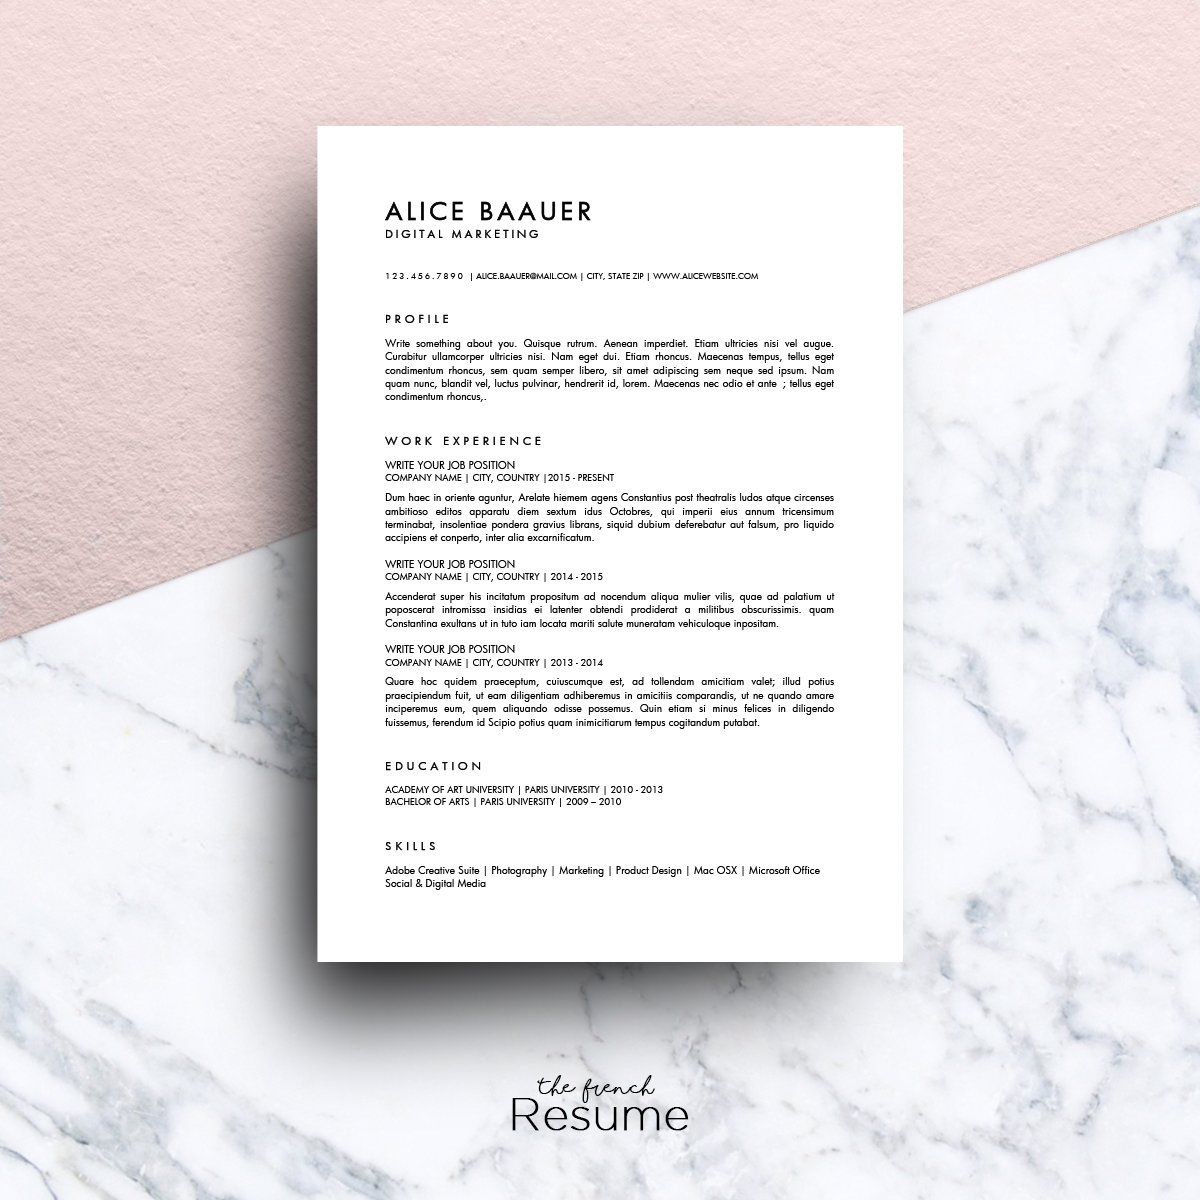 Minimalist Resume (MS Word) | Alice ~ Resume Templates ~ Creative Market